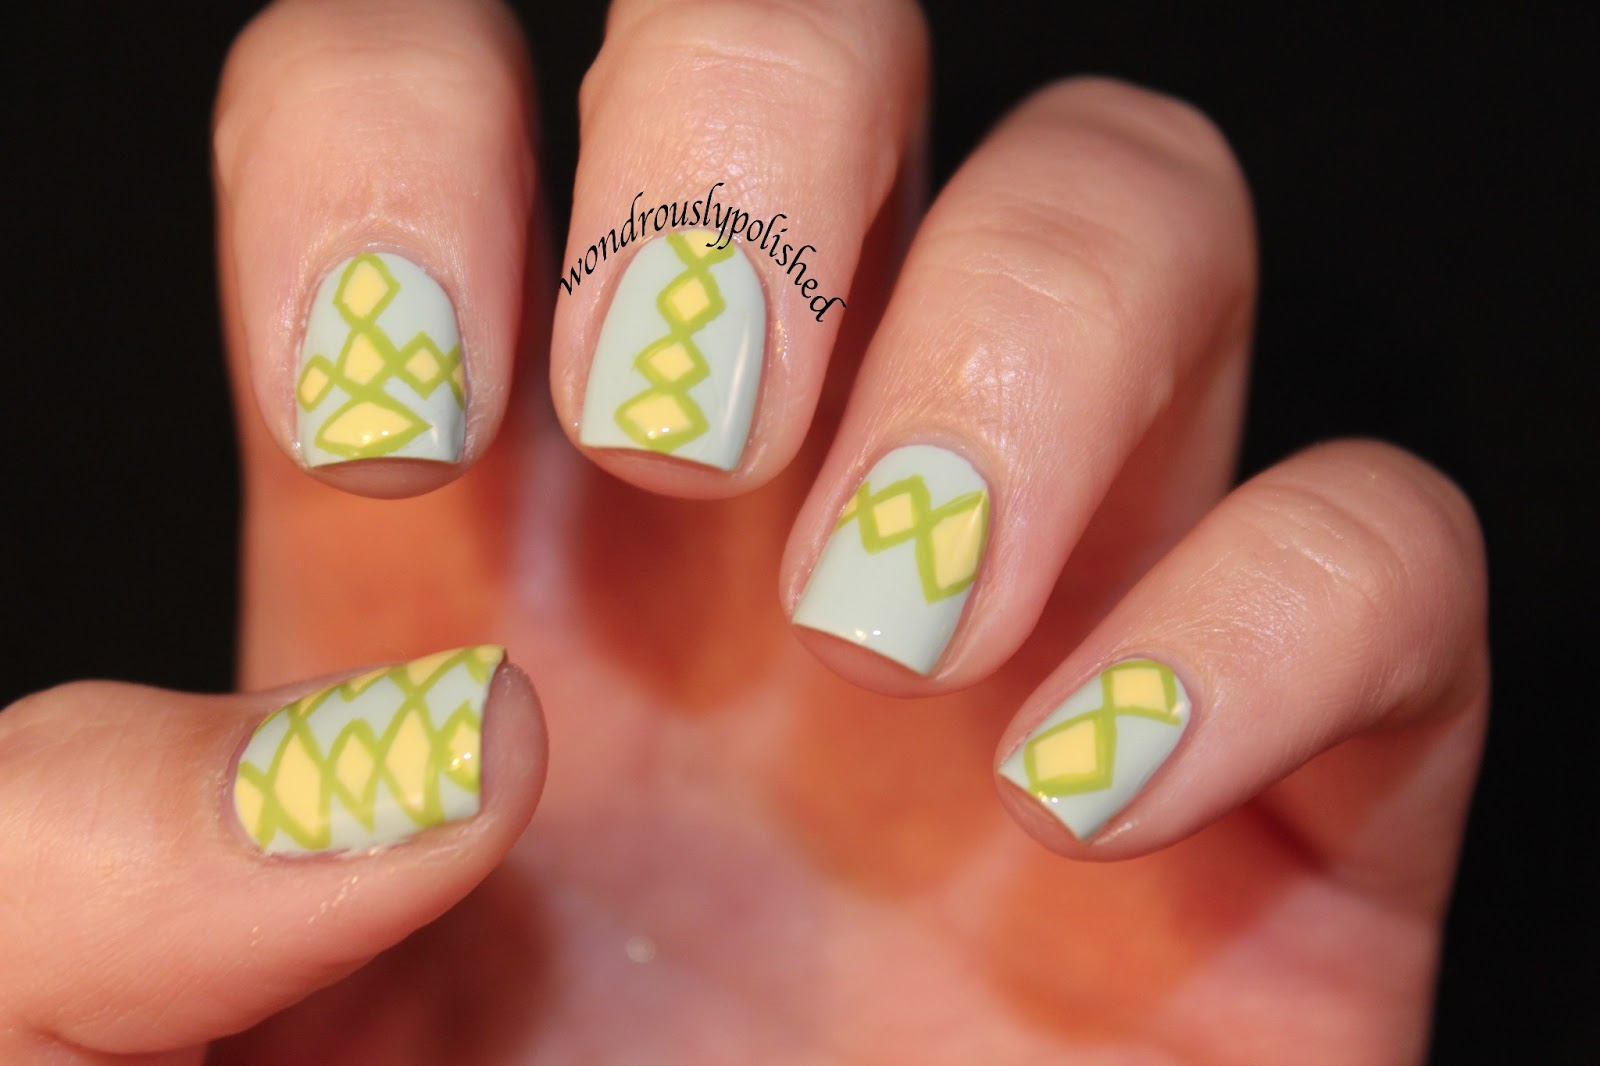 Wondrously Polished: Some spring time colors...because I said so!